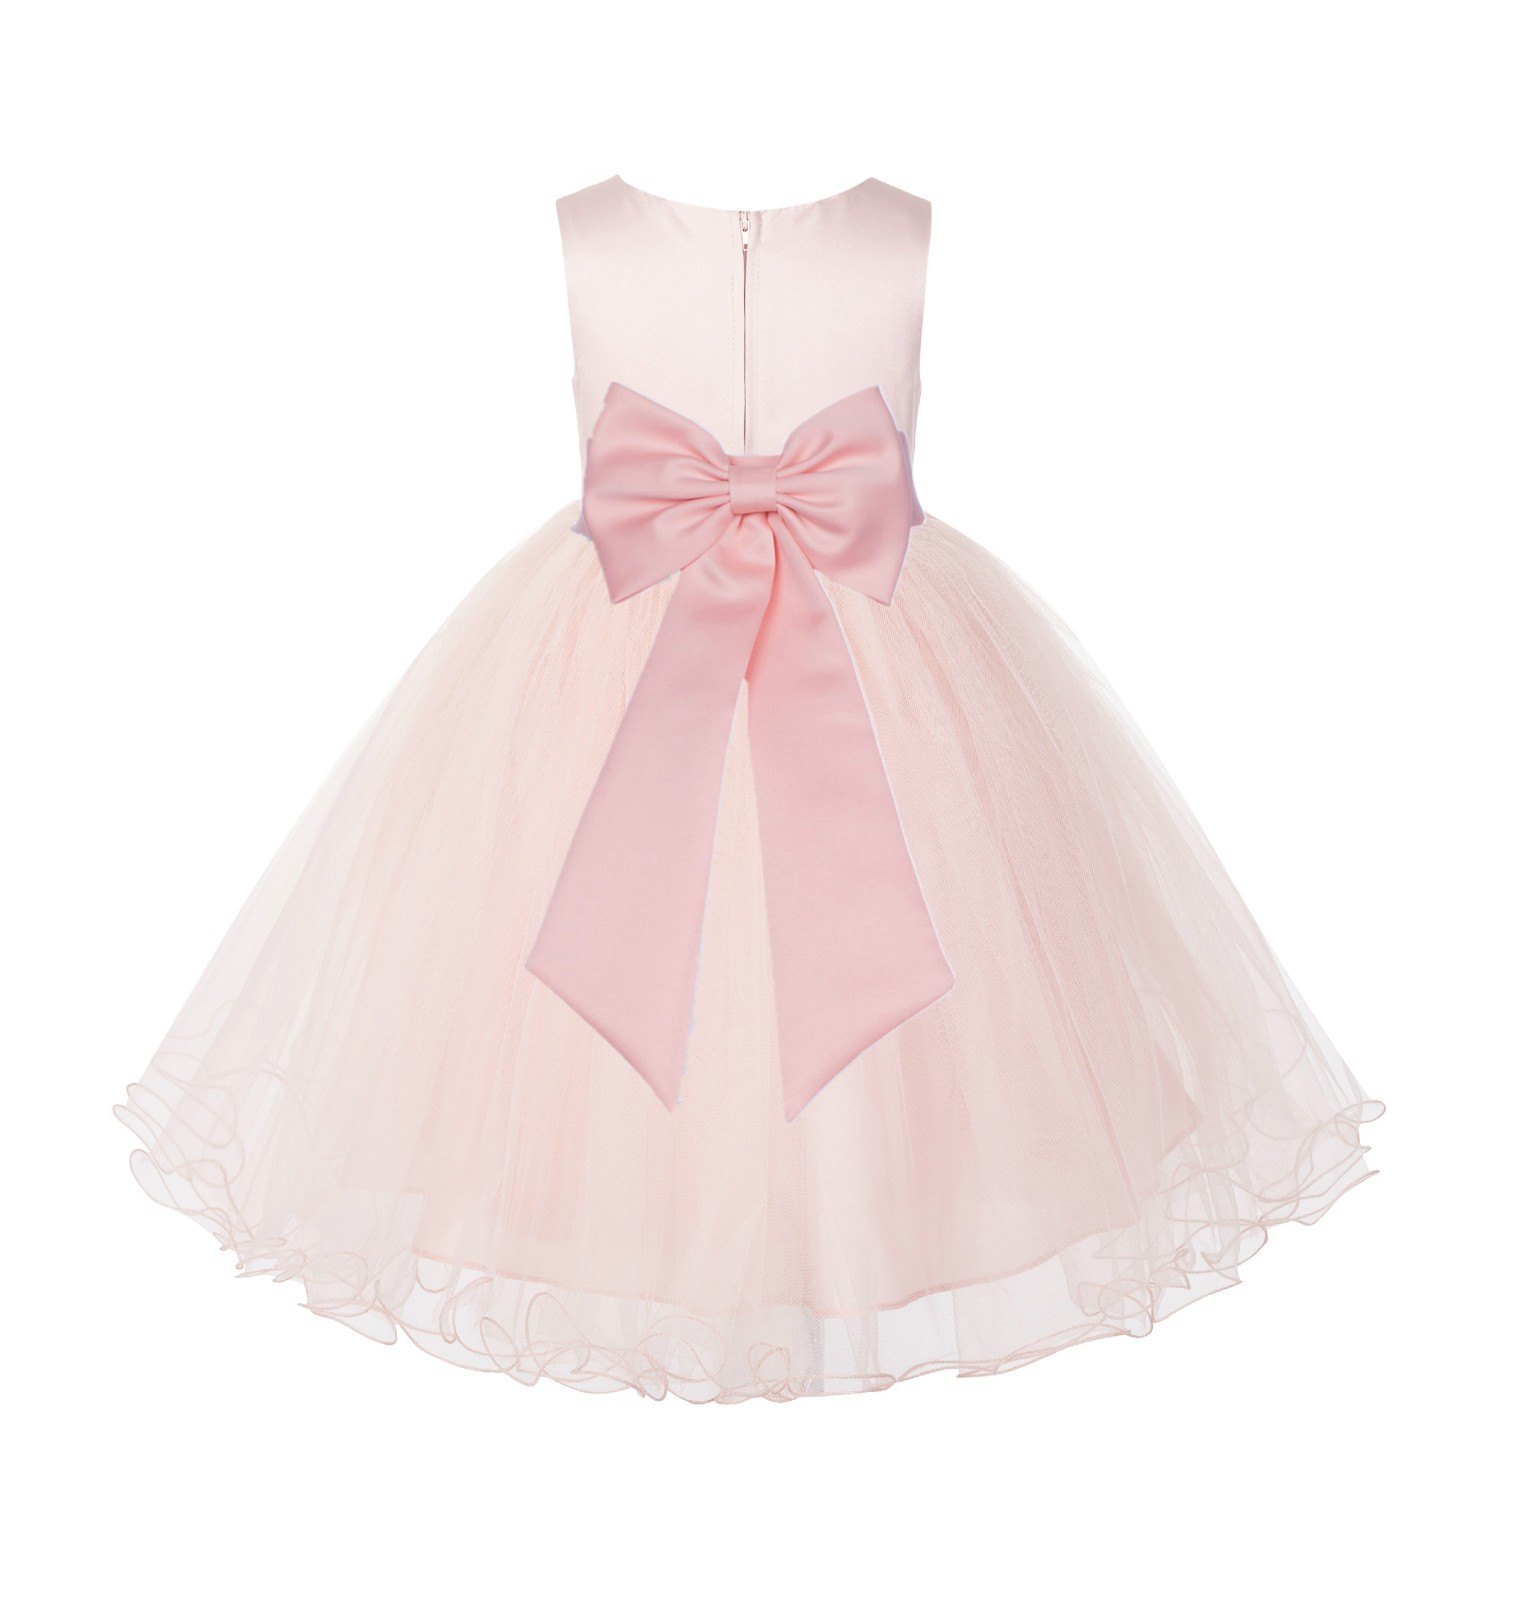 Blush PInk / Peach Tulle Rattail Edge Flower Girl Dress Wedding Bridesmaid 829T